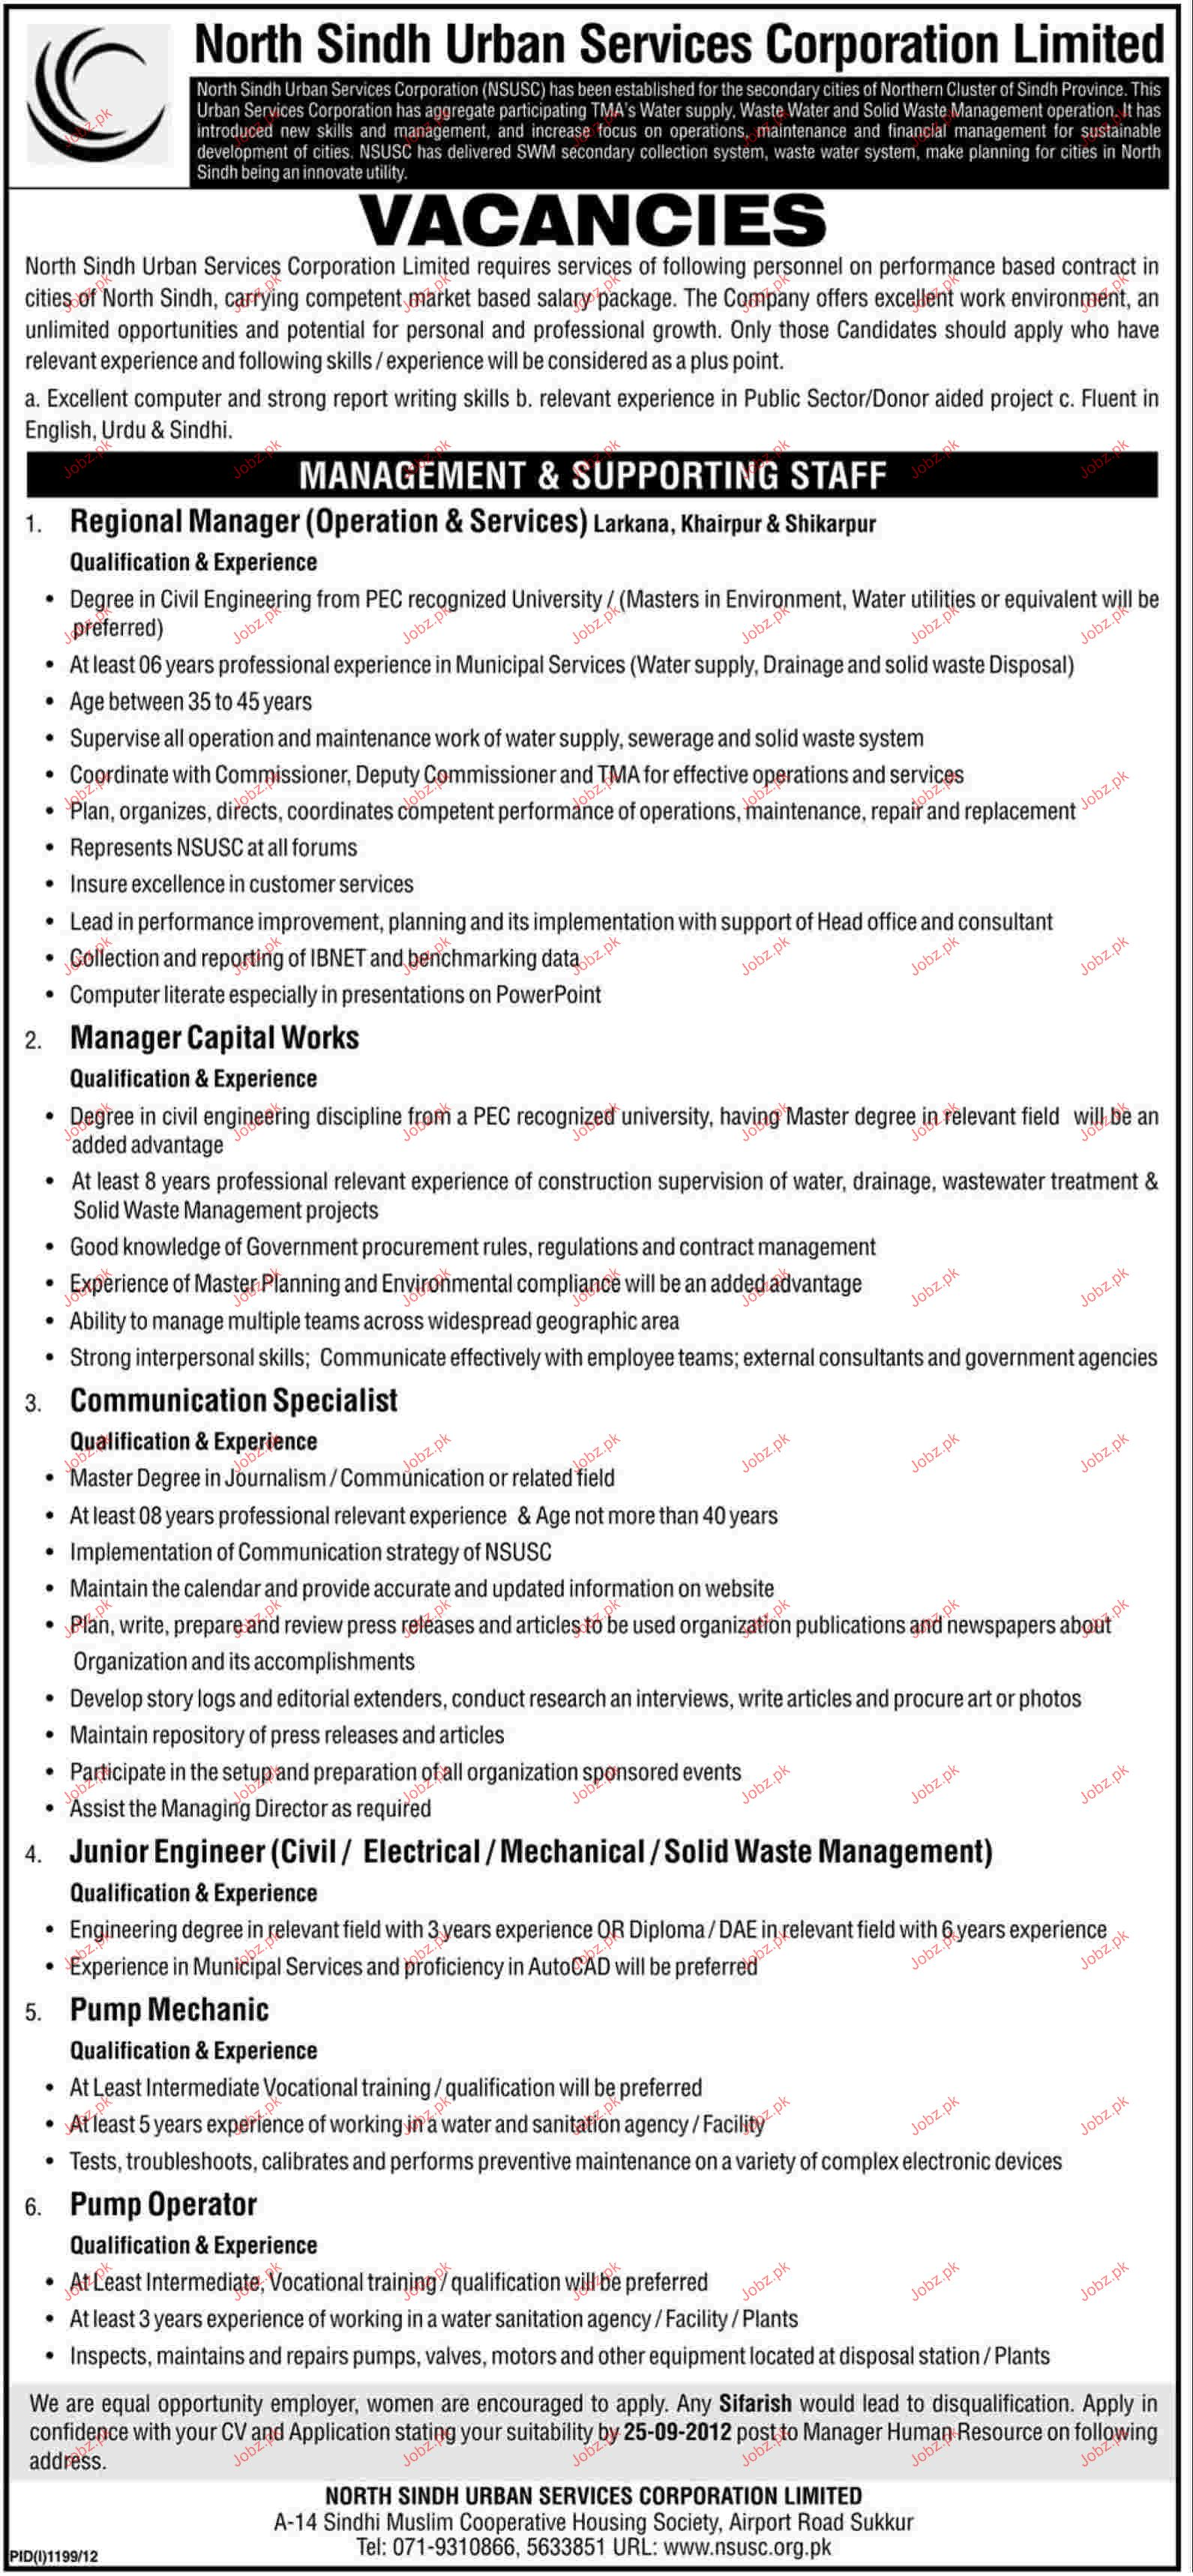 Regional Manager, Manager Capital Works Job Opportunity